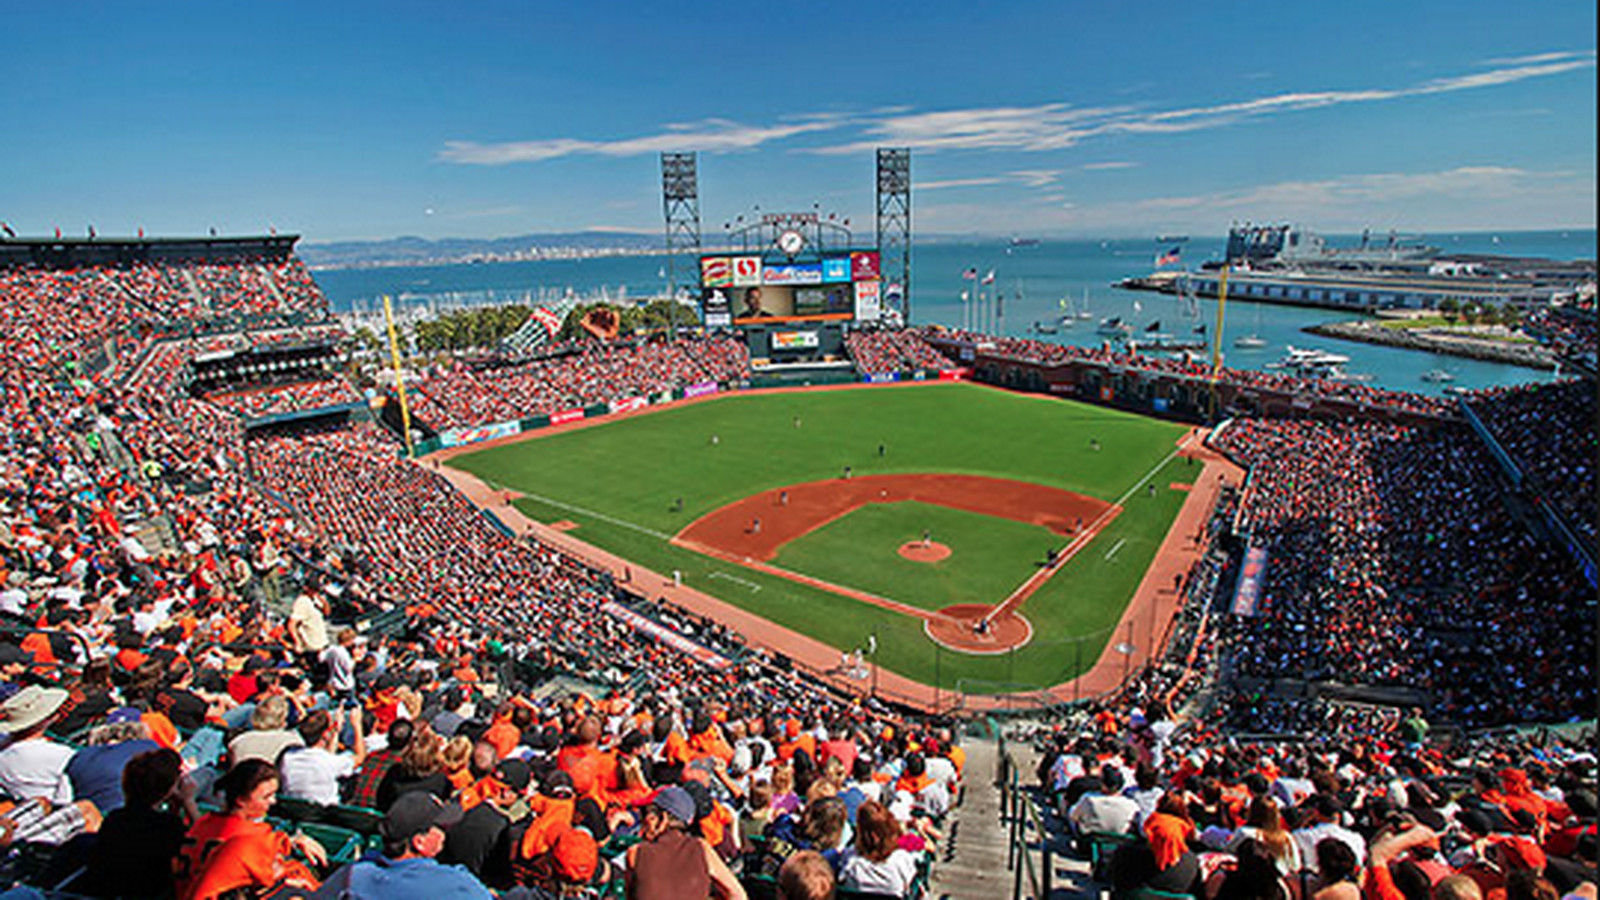 San Francisco Giants Stadium Wallpaper: What To Eat At AT&T Park, Home Of The Giants